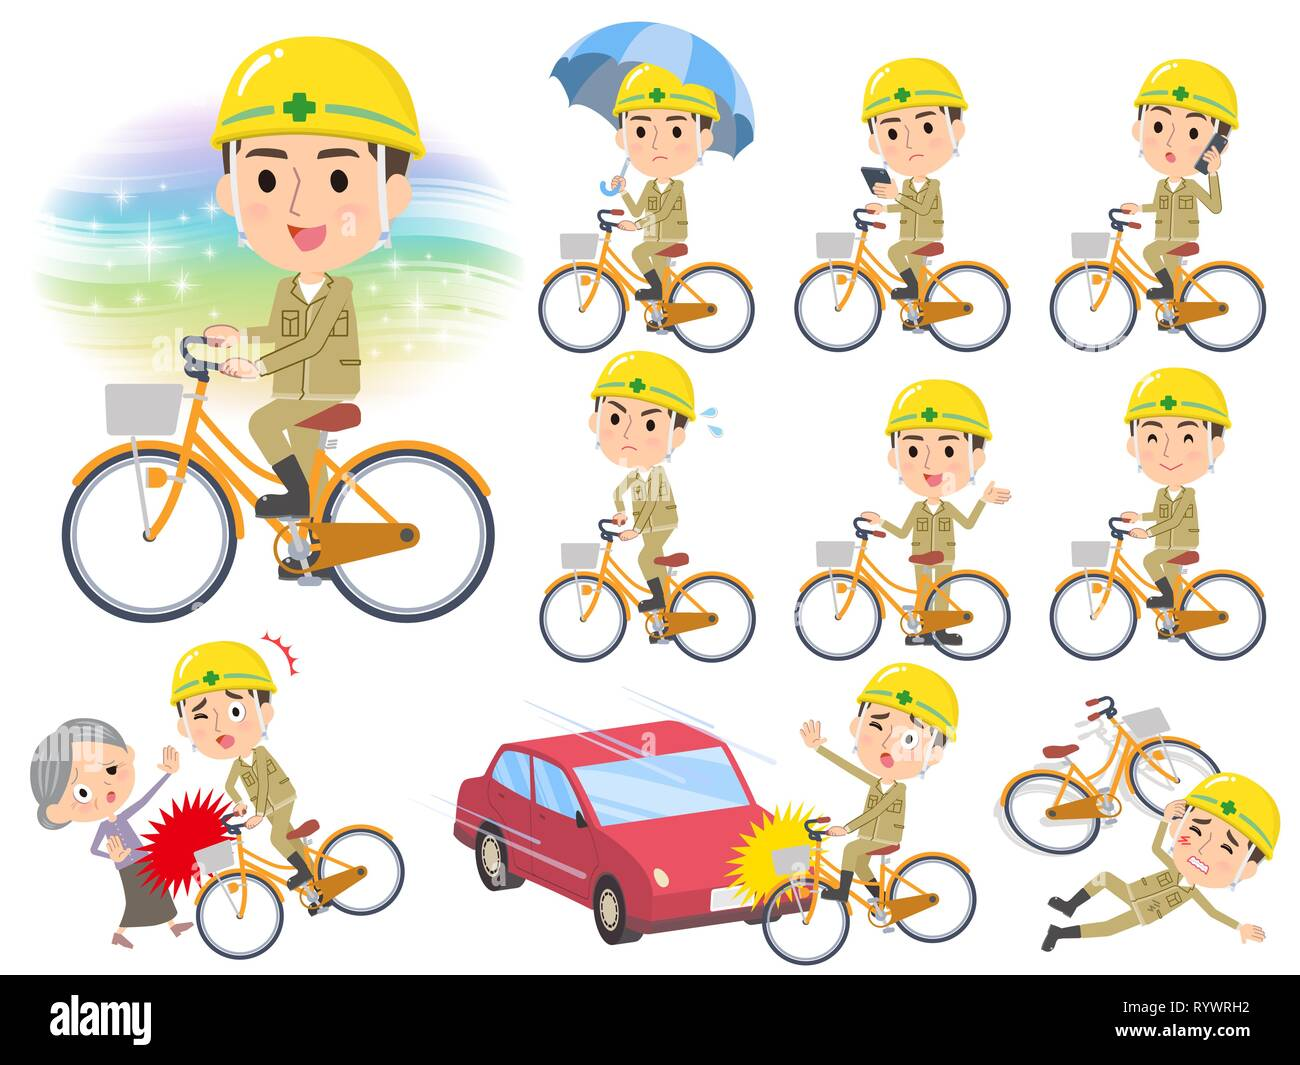 A set of working man riding a city cycle.There are actions on manners and troubles.It's vector art so it's easy to edit. - Stock Vector